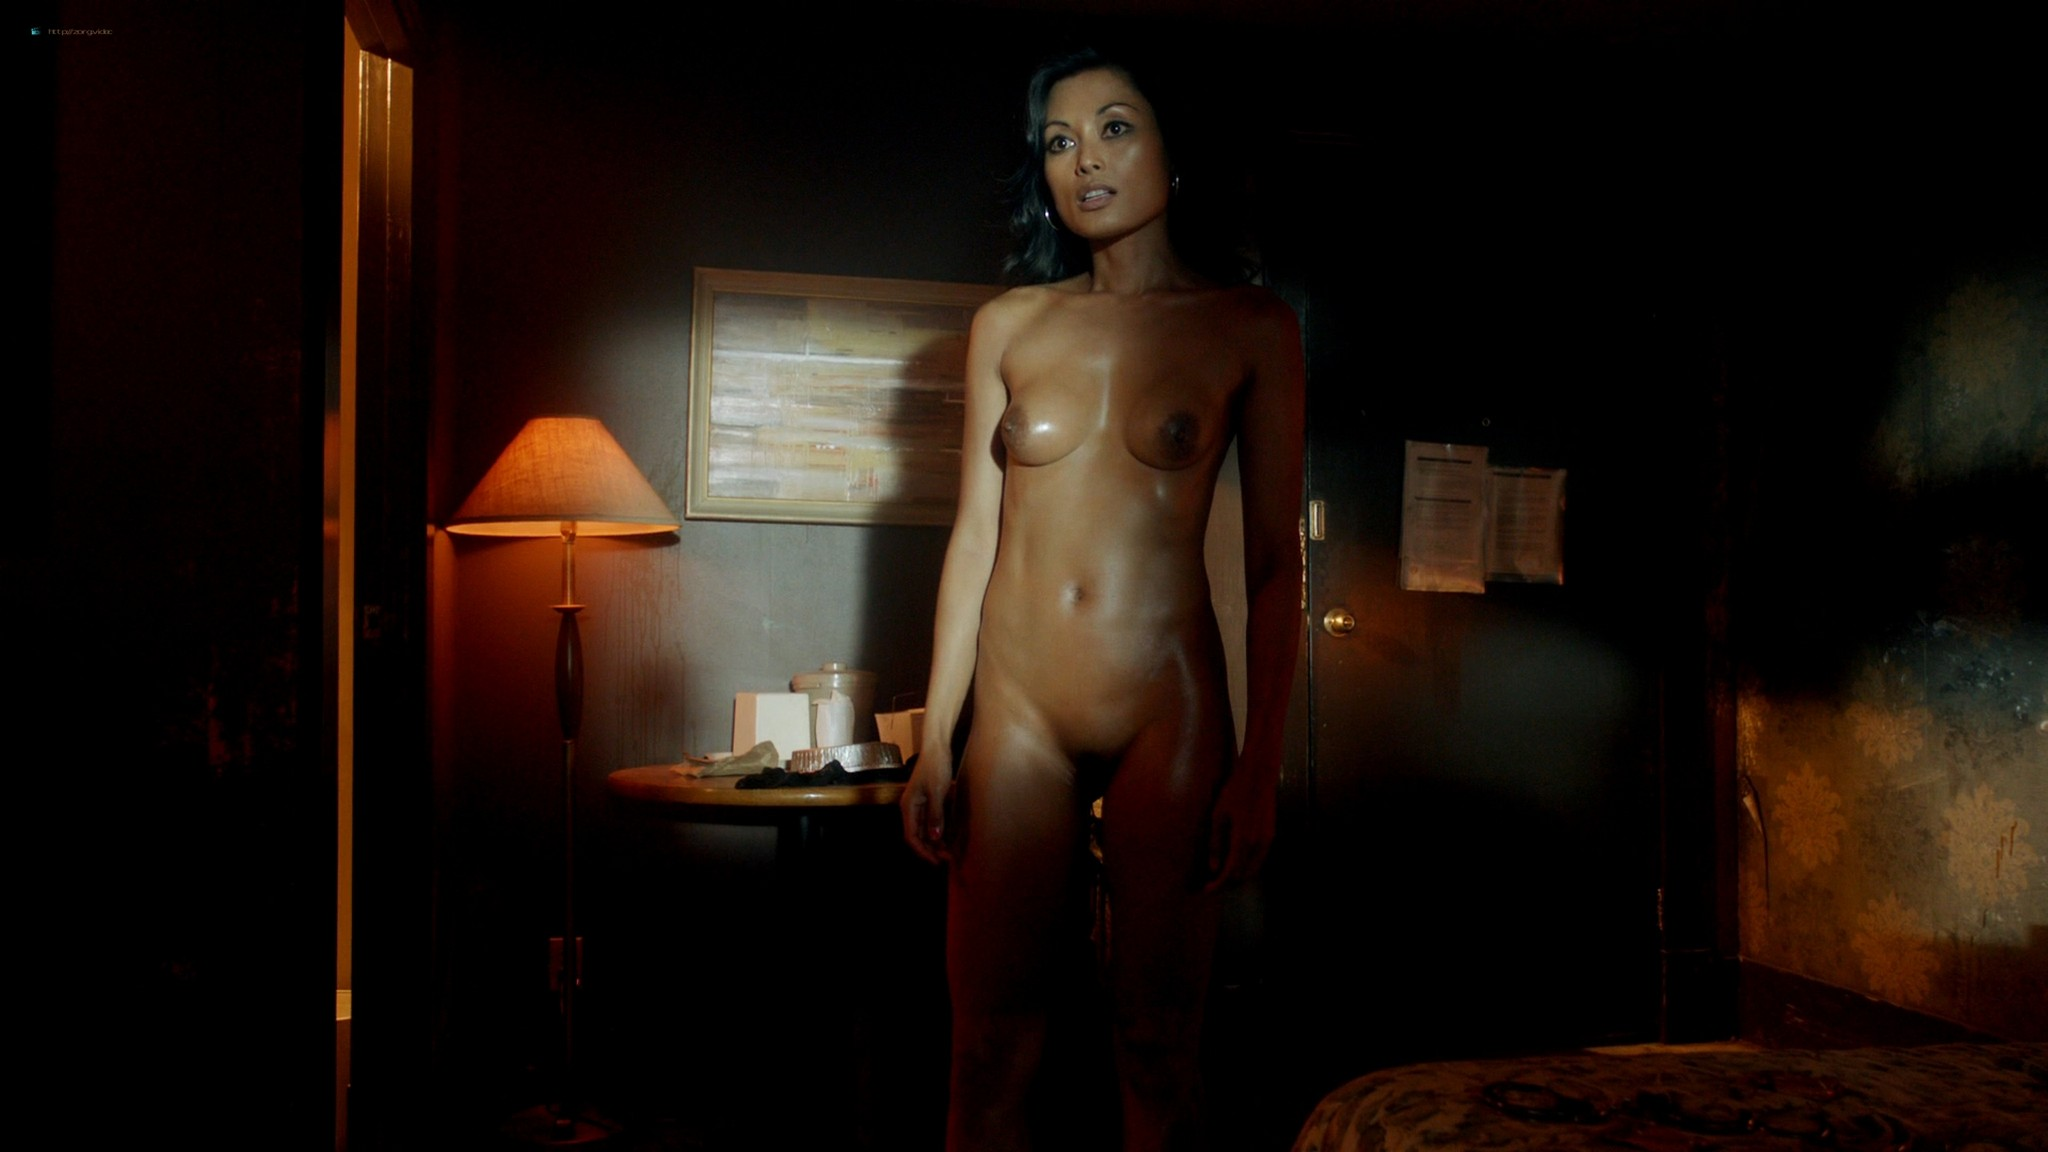 Kira Clavell nude full frontal Leah Gibson nude sex - Rogue (2013) s1e3 HD 1080p (3)